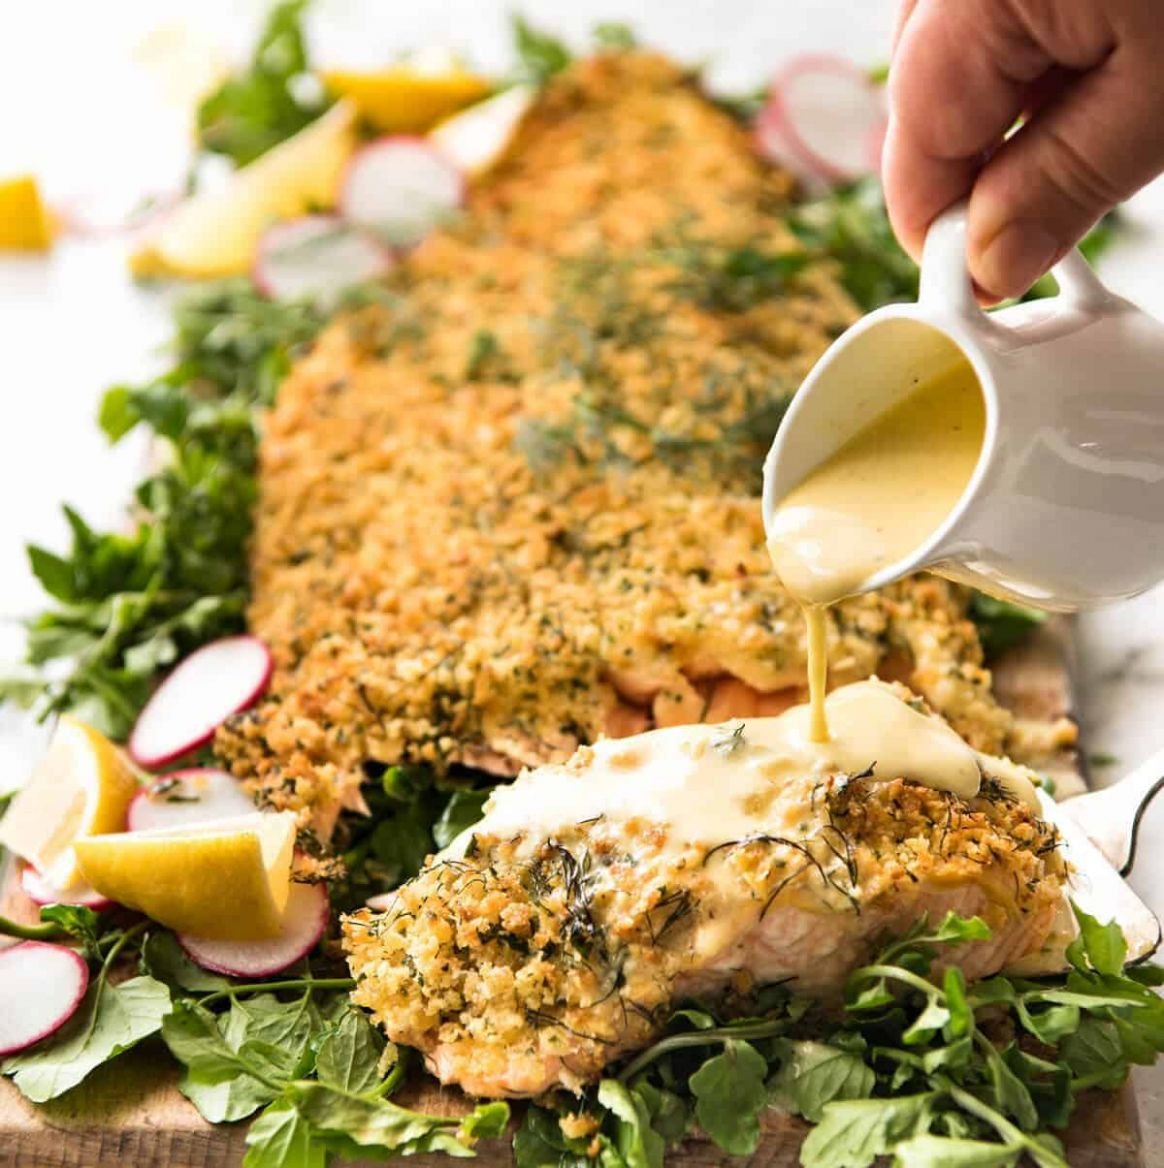 Baked Parmesan Crusted Salmon with Lemon Cream Sauce - Salmon Recipes For Xmas Dinner